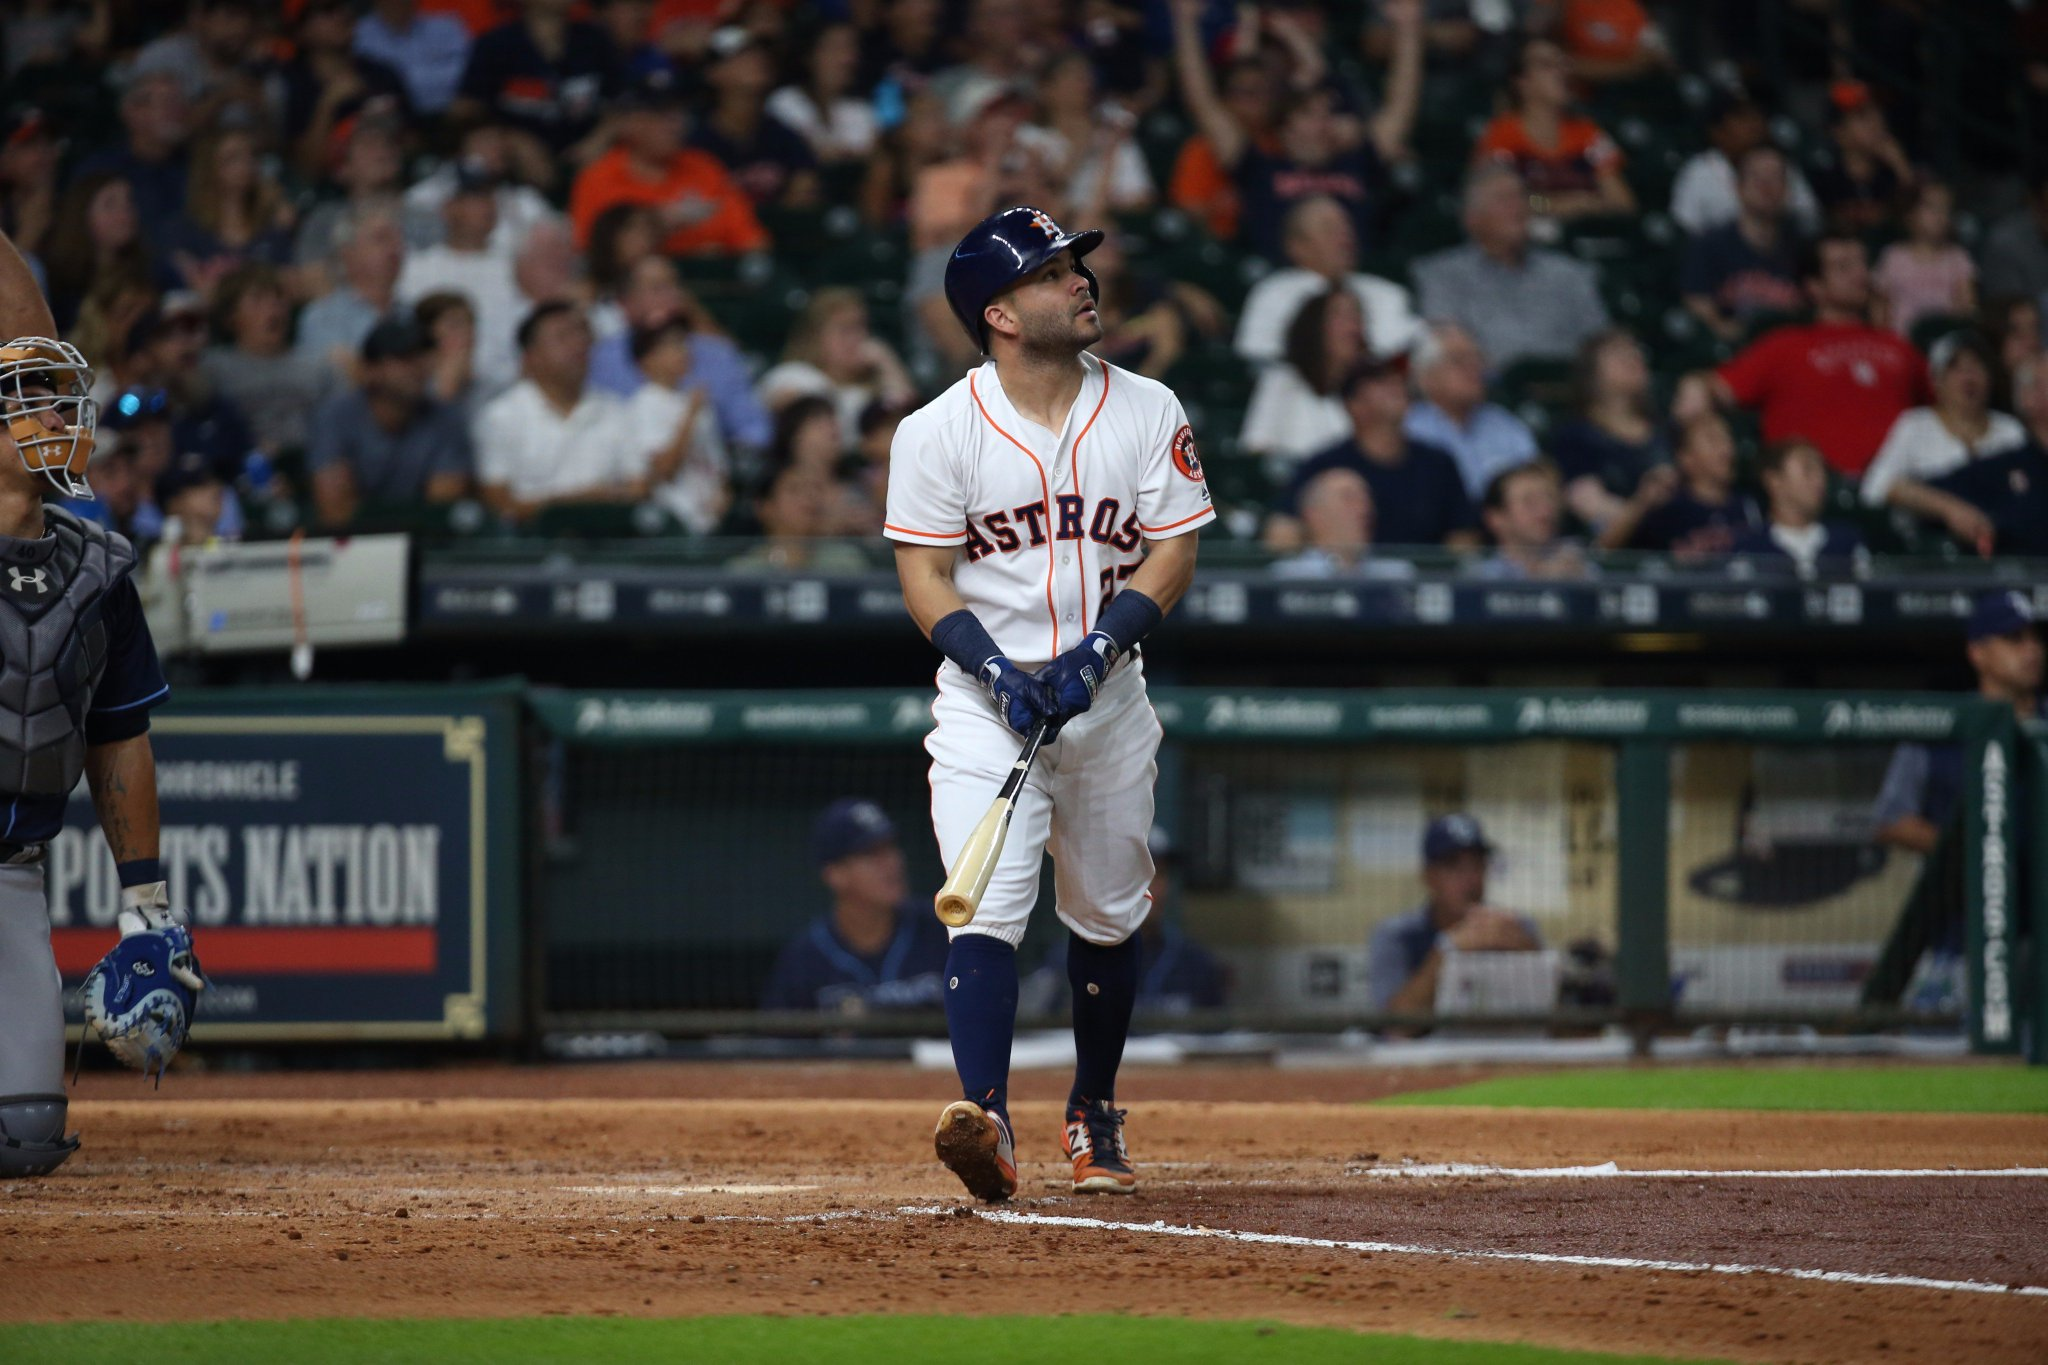 Fact: The best Black Friday deals are free.  RETWEET this for a chance to win a @JoseAltuve27 signed ball! https://t.co/ldcfZcmpG5